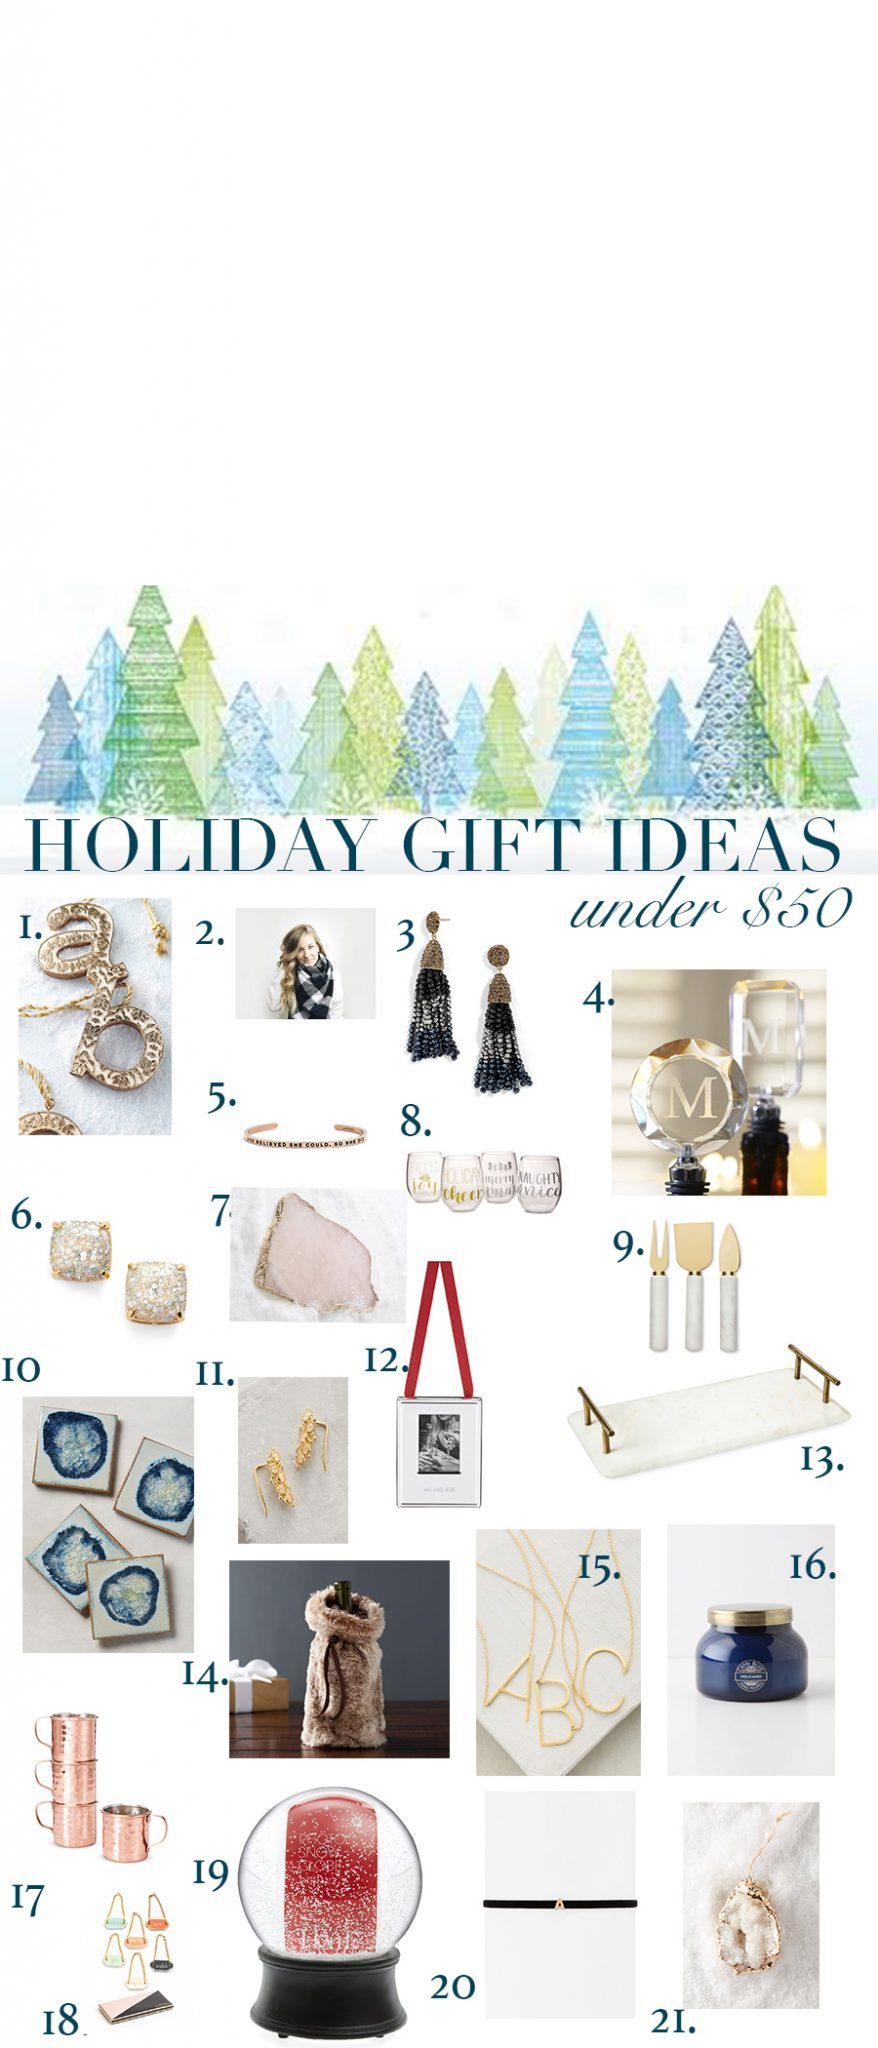 Ultimate Gift Guide - Thoughtful Gifts under $50 | cc+mike ...